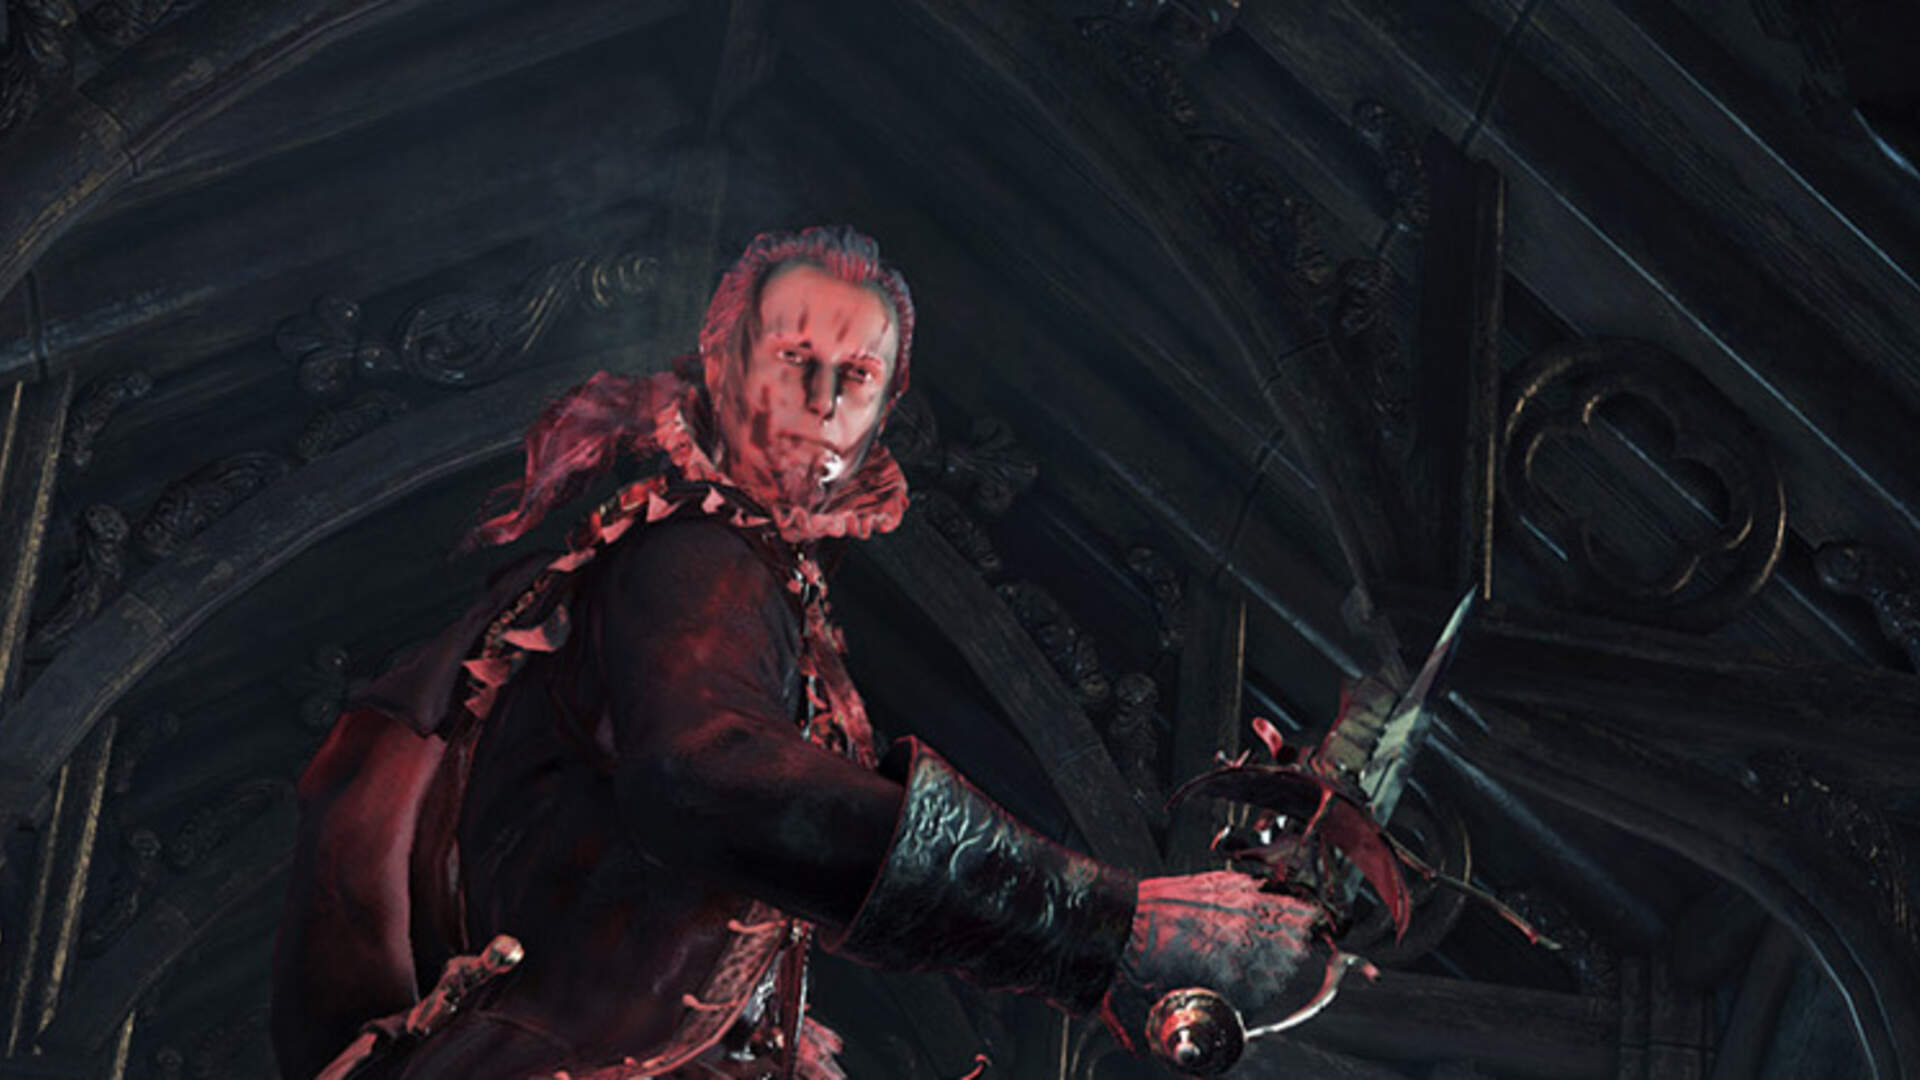 Bloodborne Blood Echo Guide - How to Farm Blood Echoes to Level Up Fast